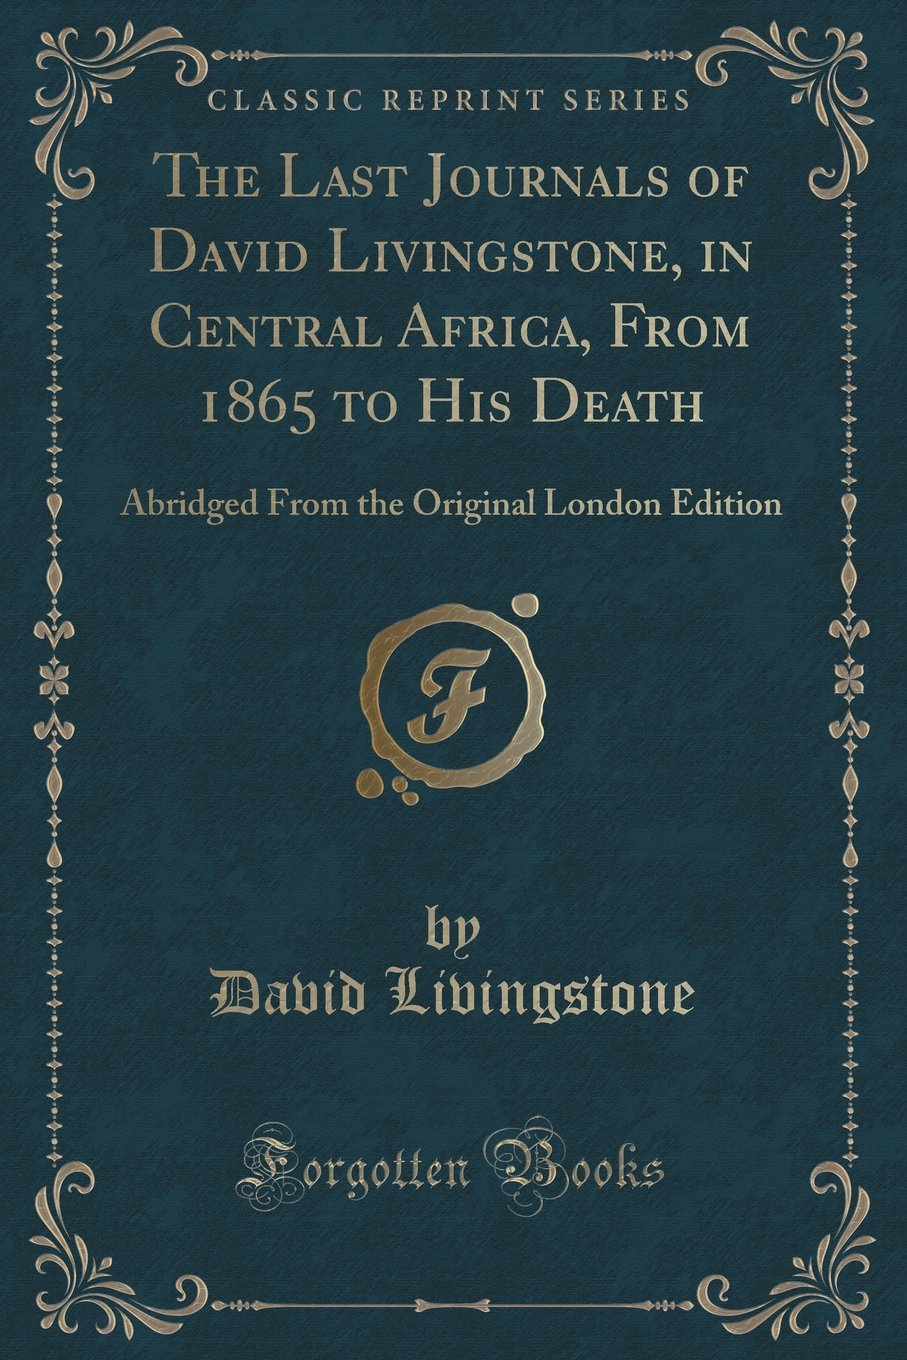 The Last Journals of David Livingstone, in Central Africa, From 1865 to His Death: Abridged From the Original London Edition (Classic Reprint) PDF